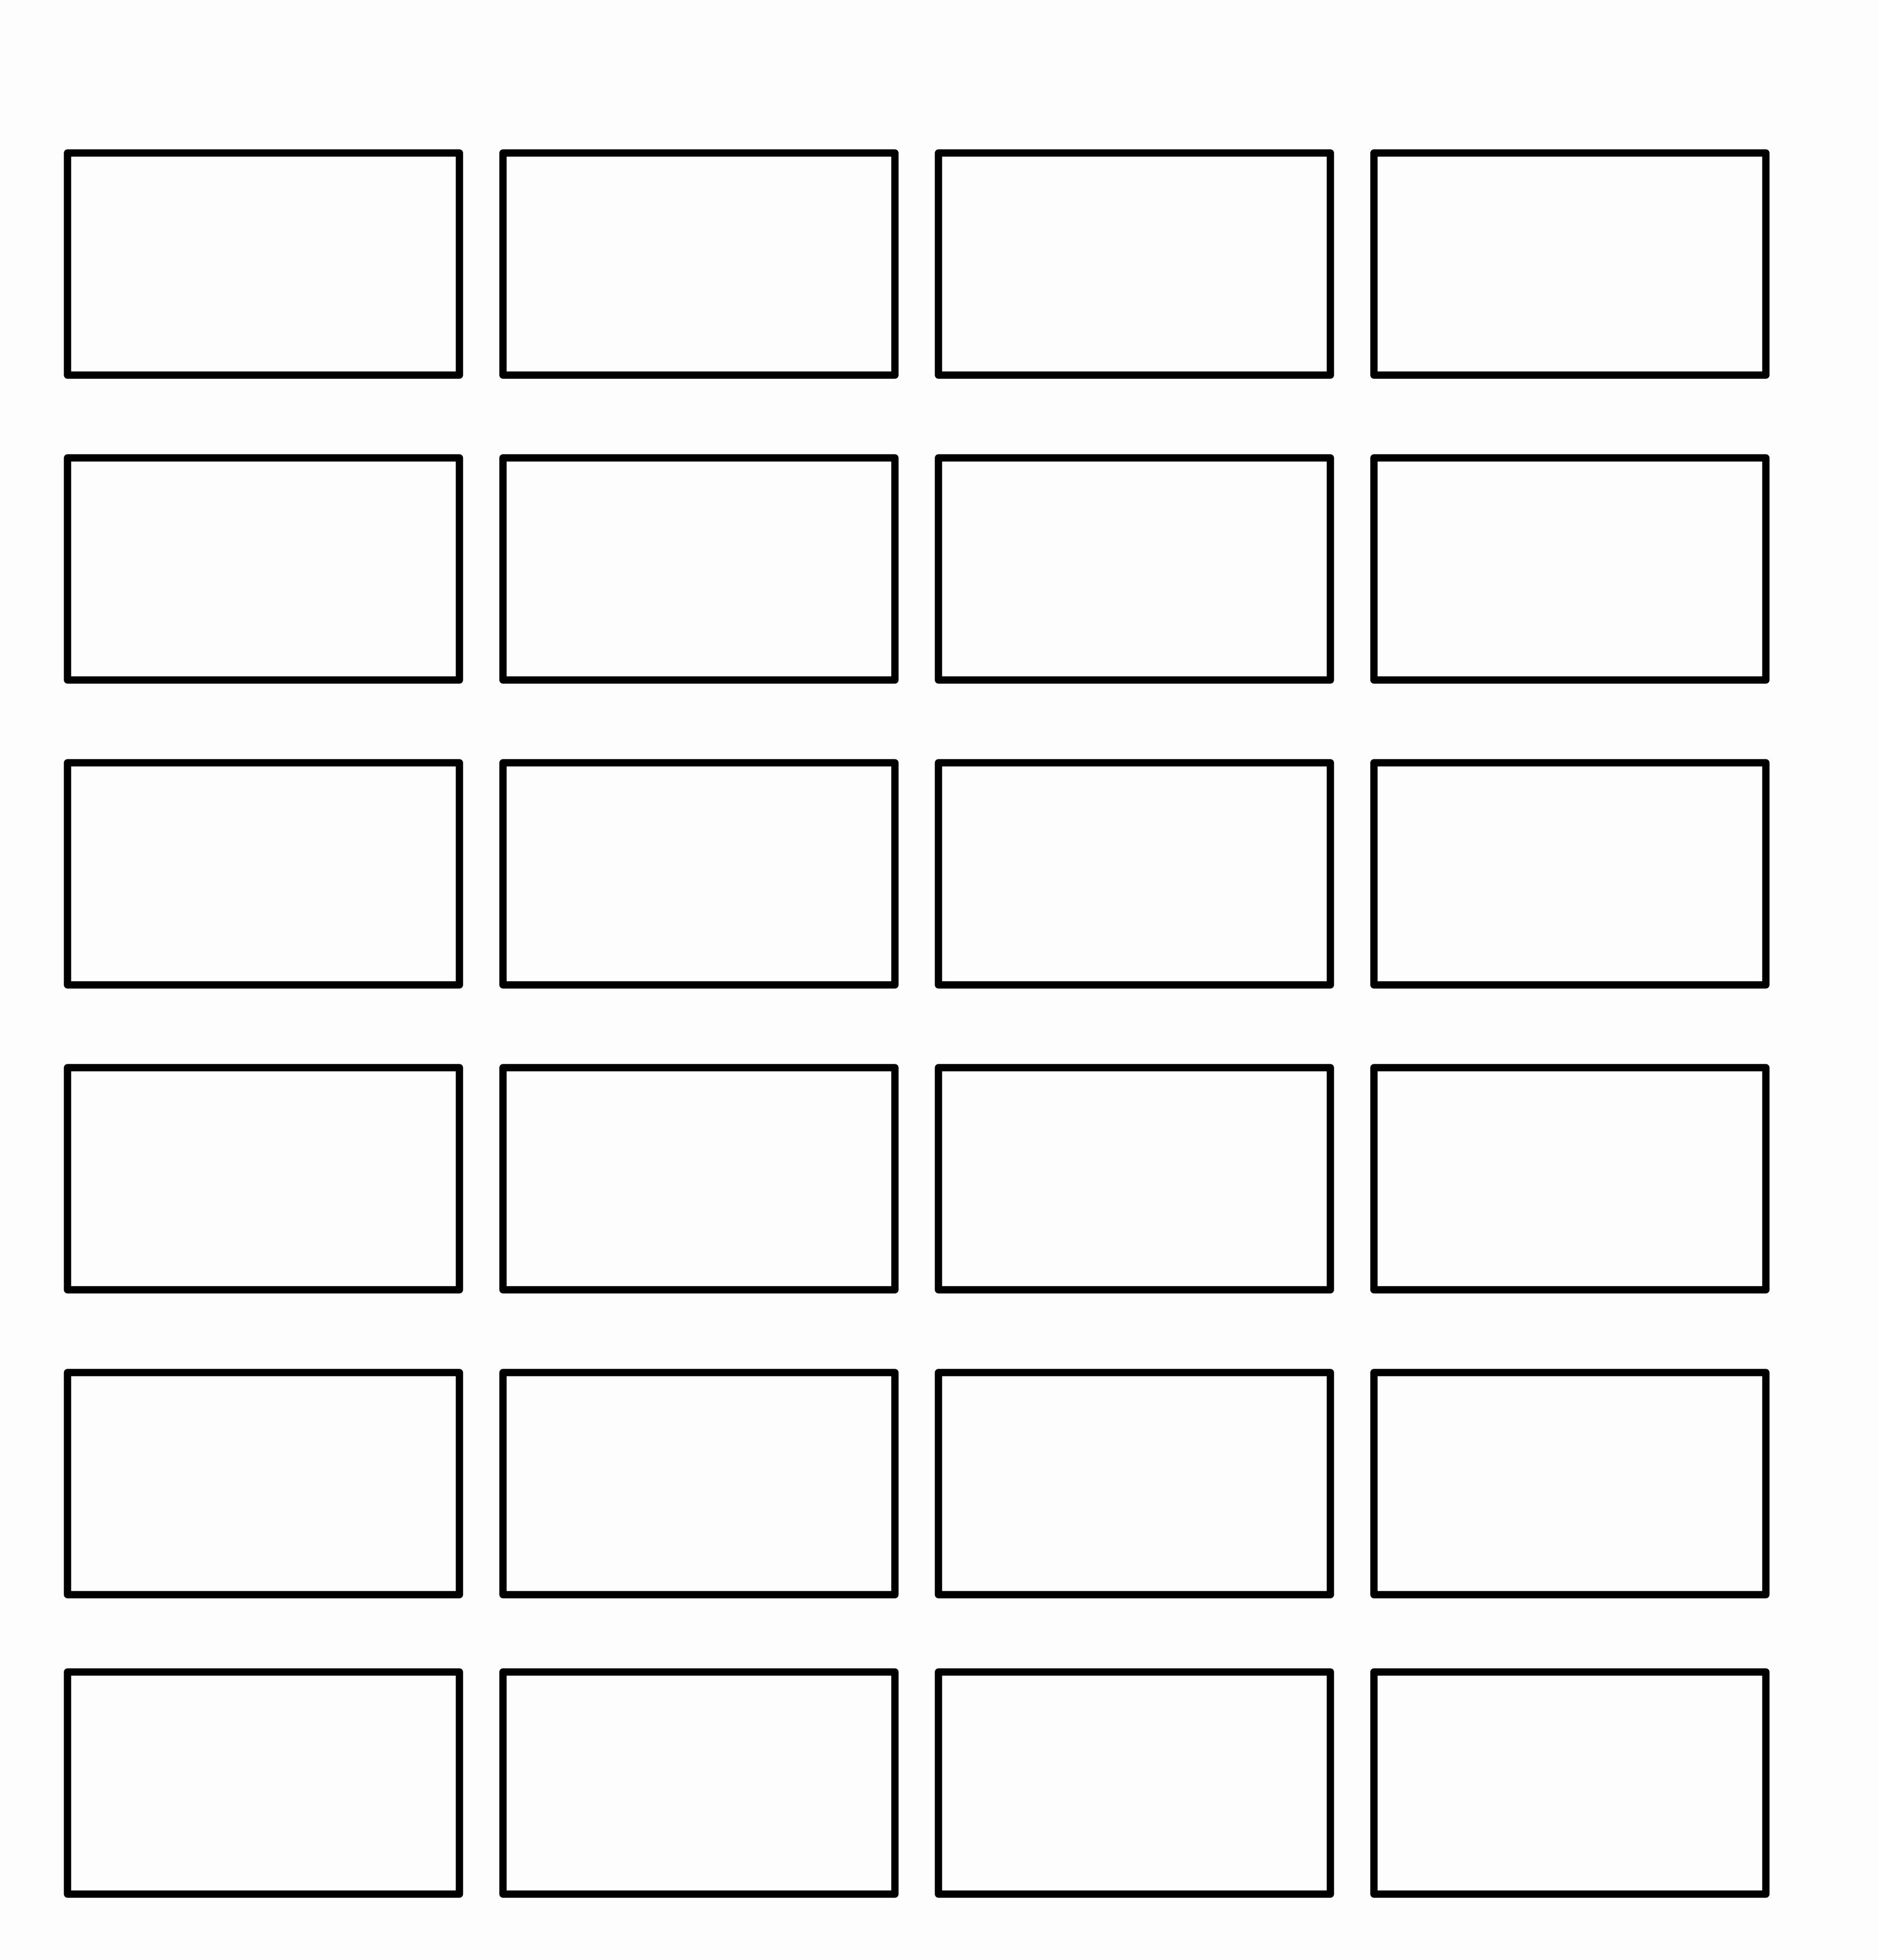 Best S Of 4 Square Grid Template 8 Square Grid